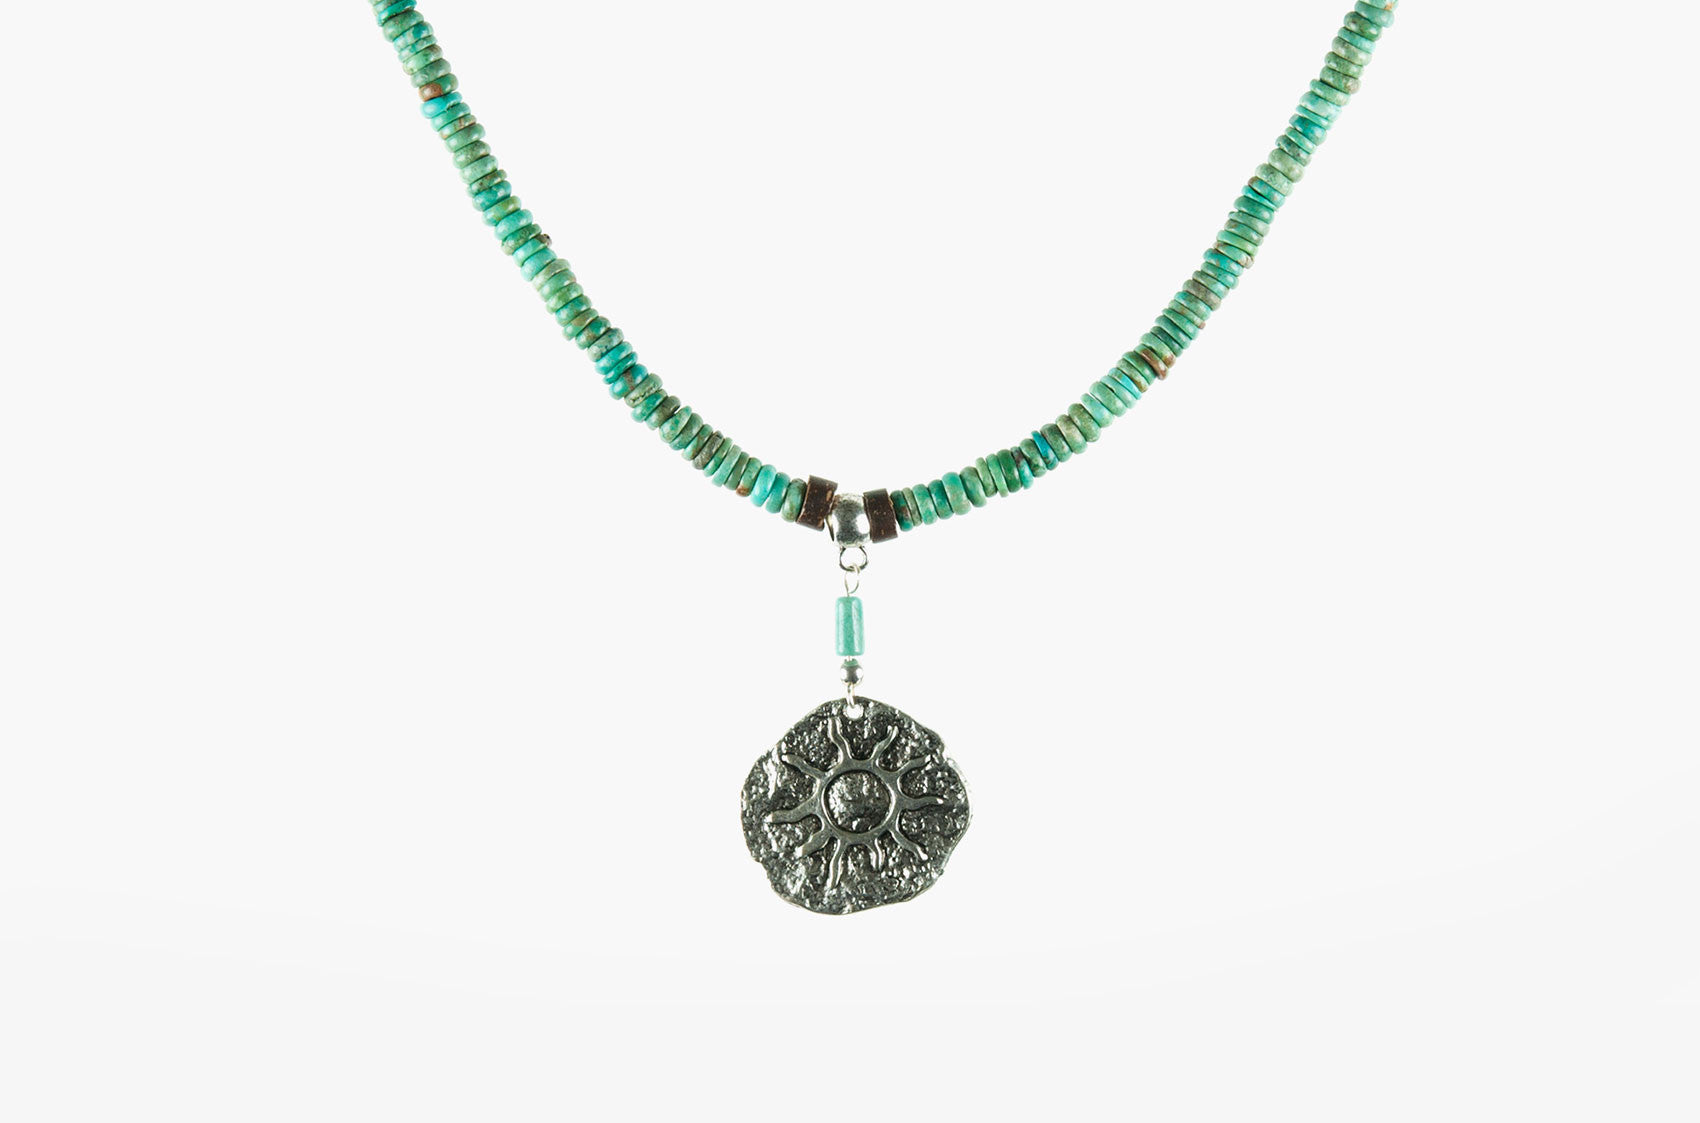 Turquoise sun medallion necklace